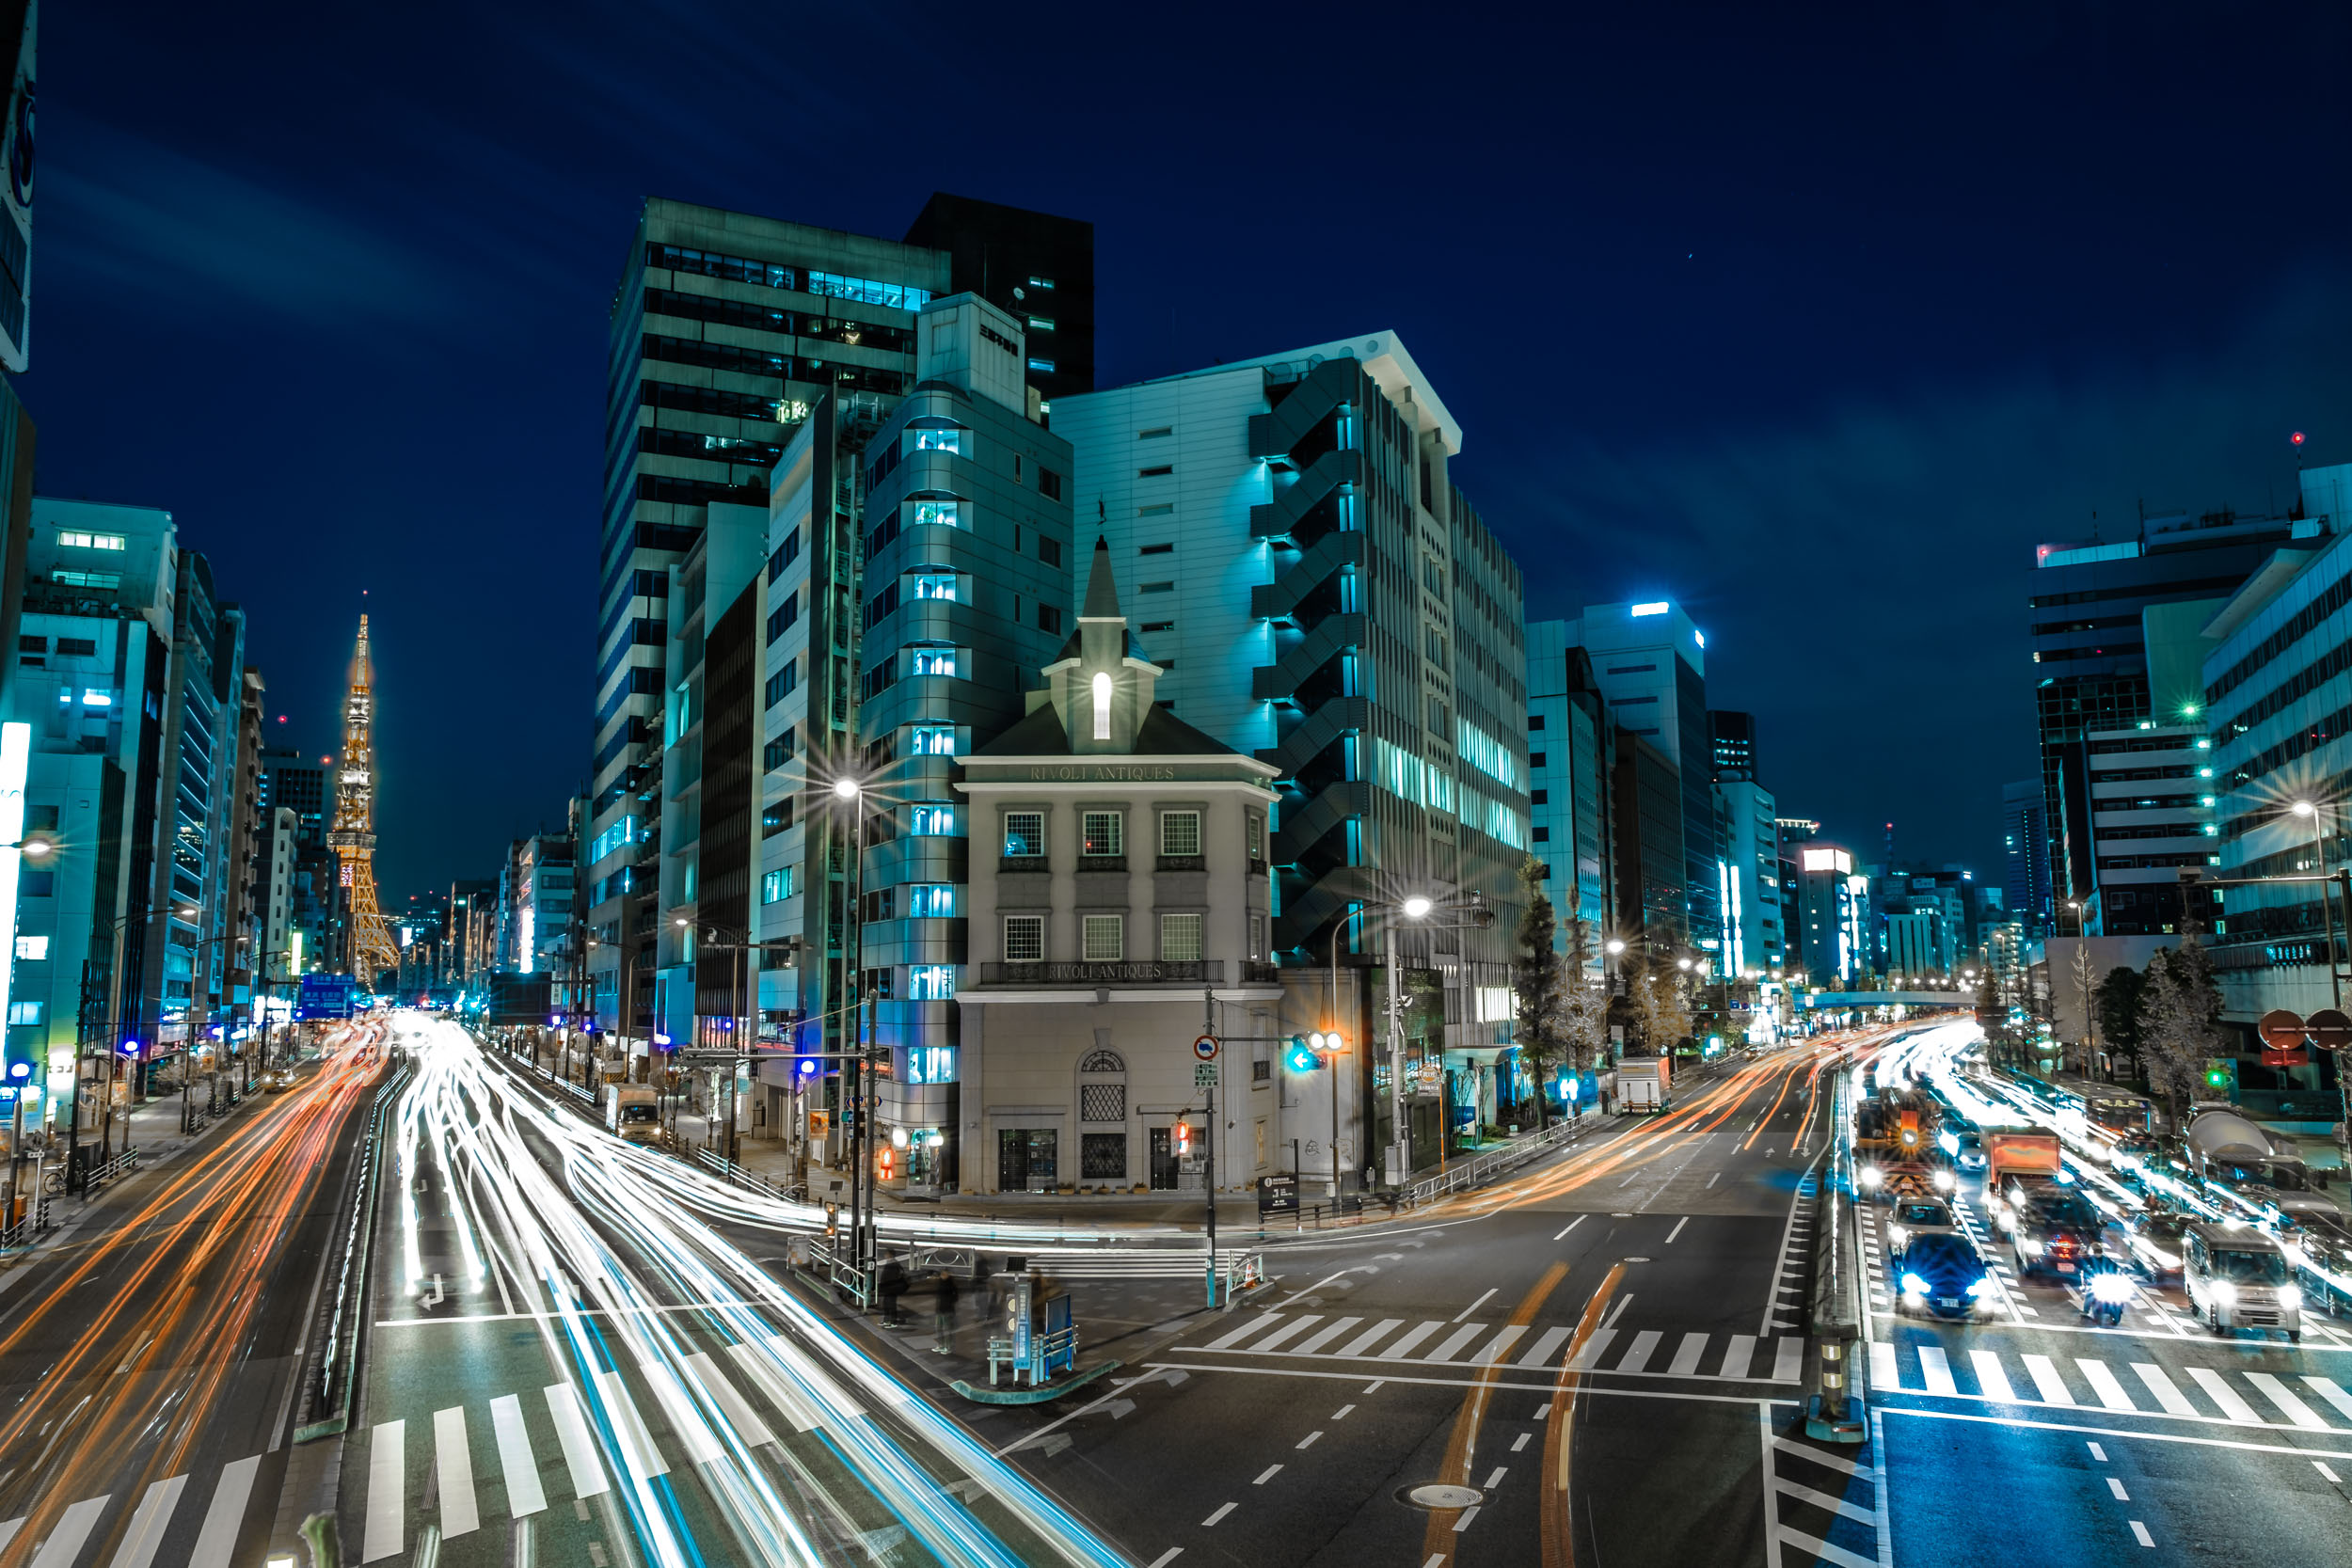 Tokyo Tower on the left and Daiichi-Keihin on the right